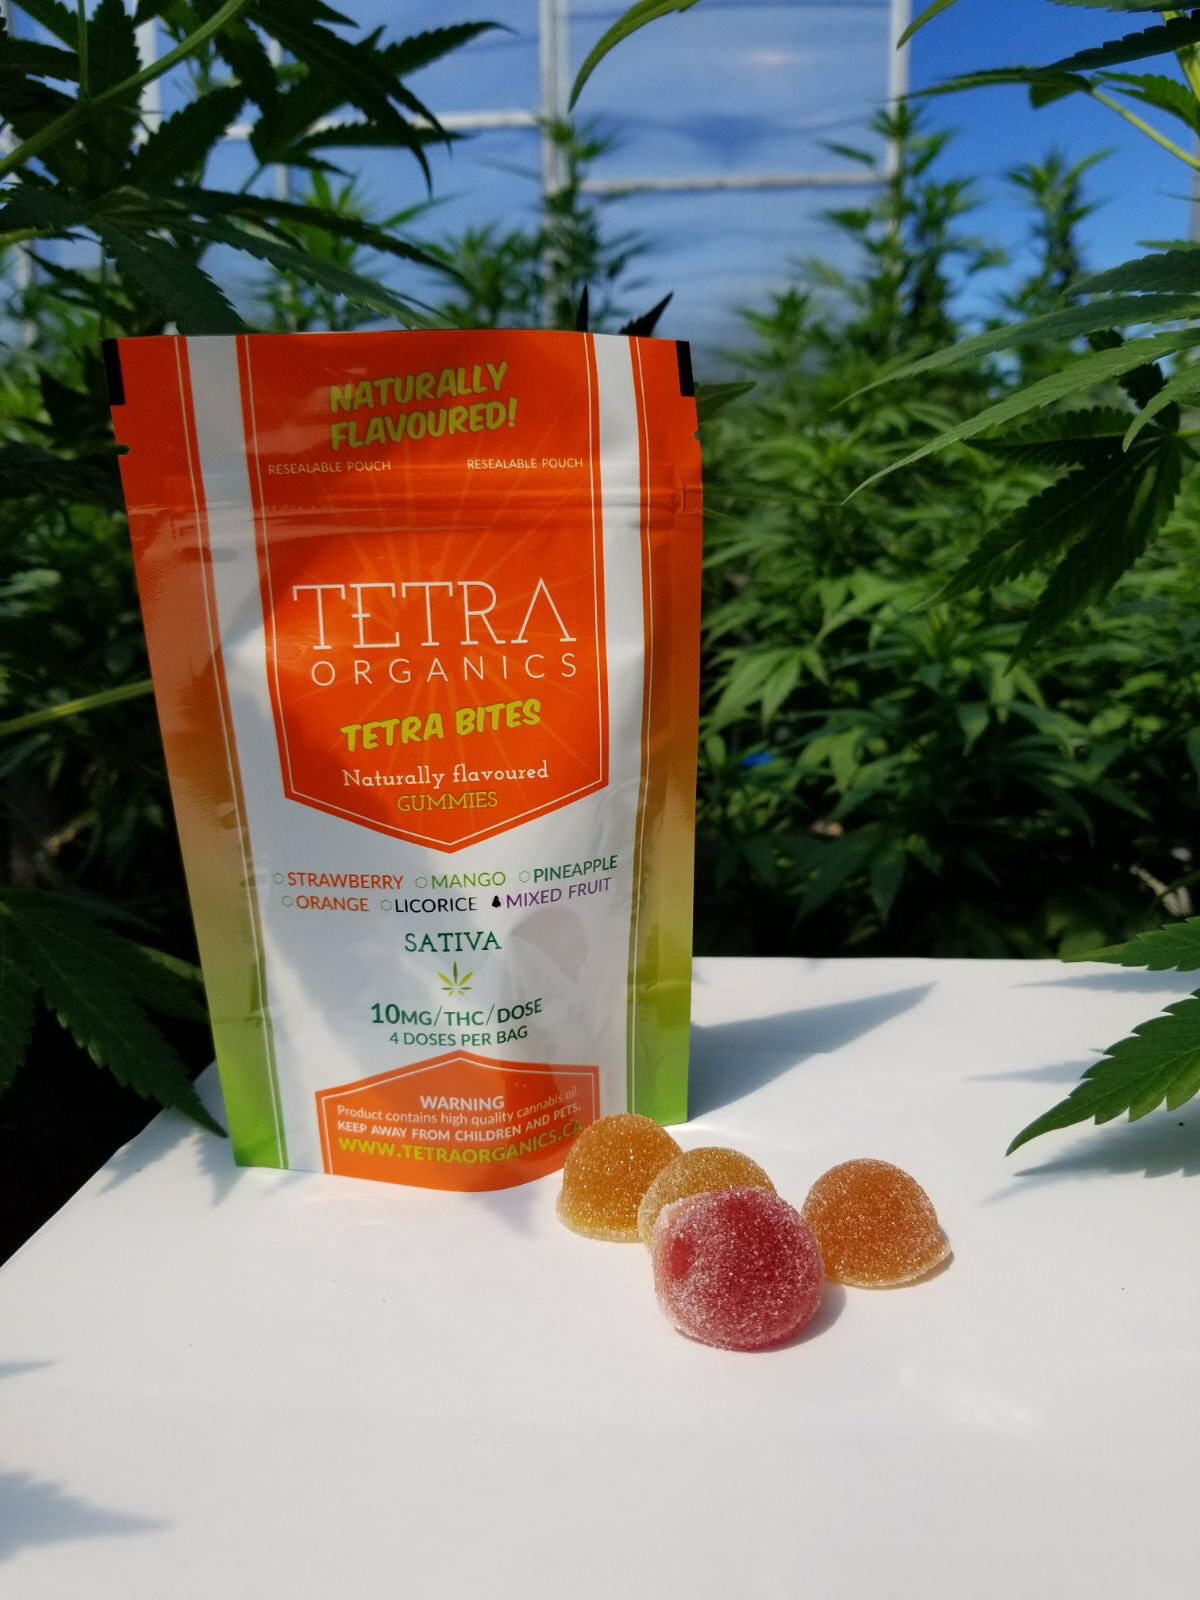 buy-gummies-online-mixed-fruit-40mg-thc-sativa-by-tetra-bites-is-for-sale-at-legalonlinemarijuana-dispansary-the-best-marijuana-weed-dispensary-in-canada2 (1)